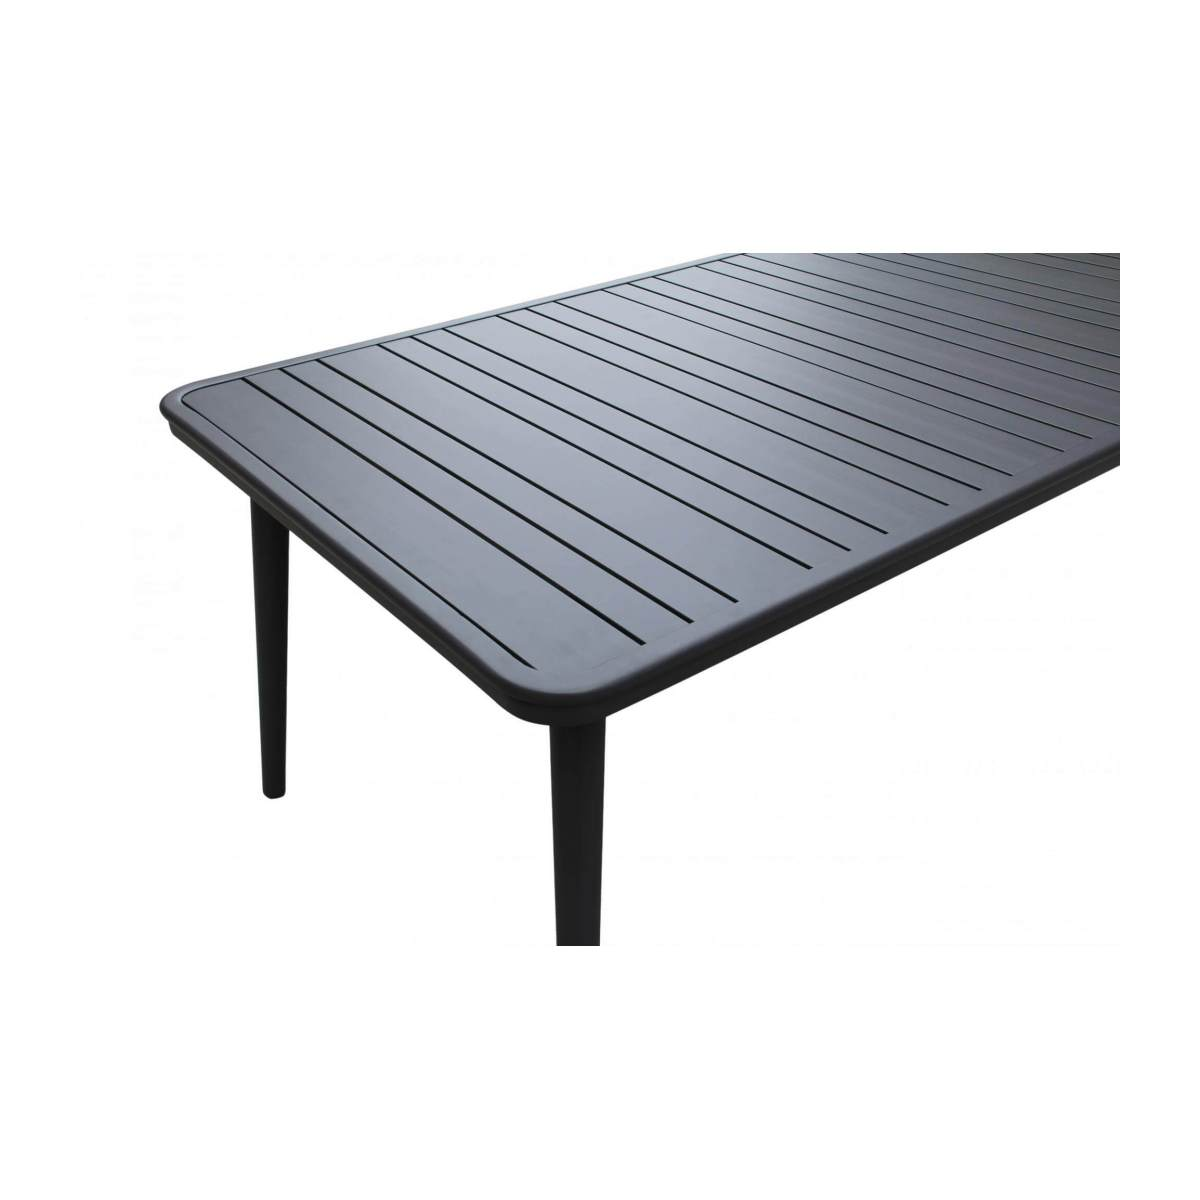 Table de jardin en aluminium - Anthracite poudré n°6